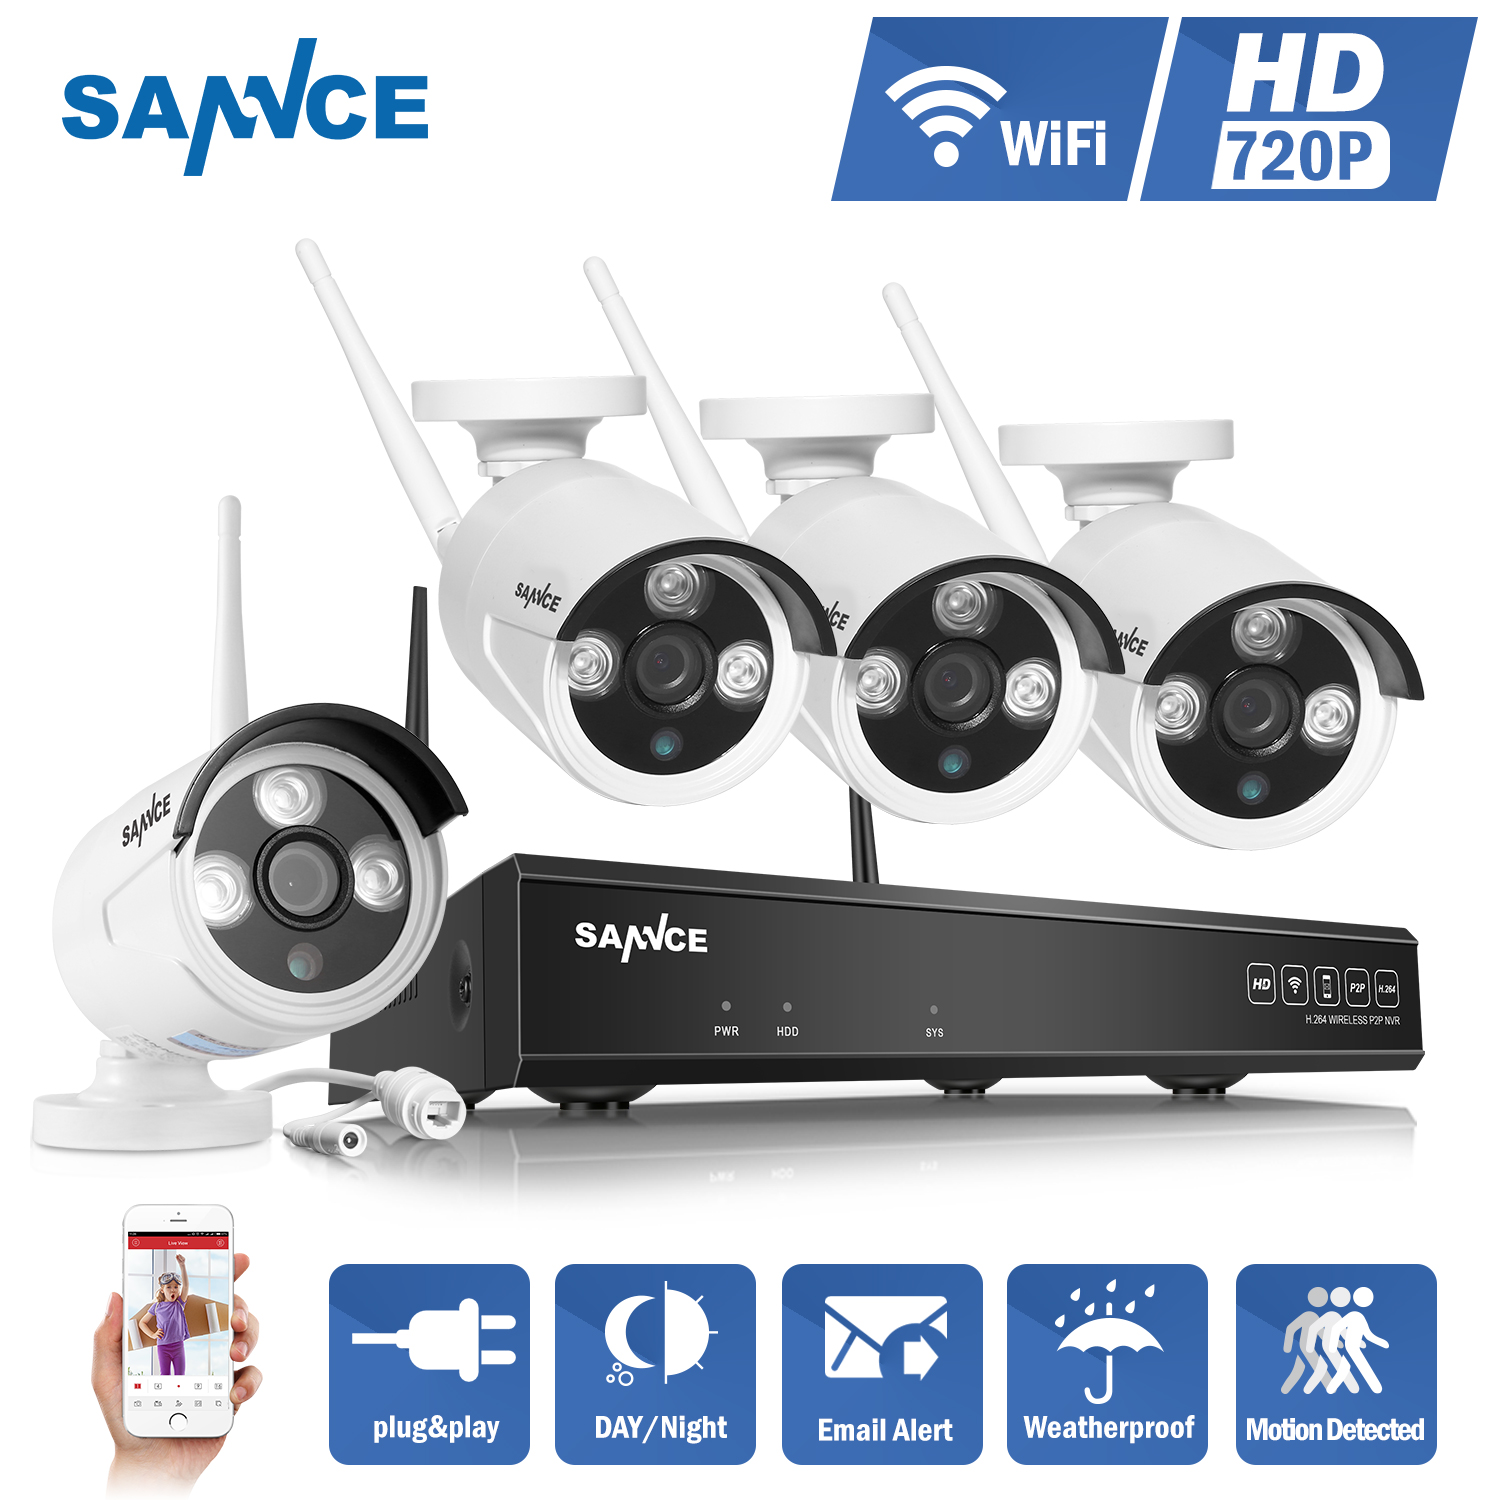 SANNCE 4CH Wireless IP Camera Wi-fi NVR Kit 720P HD Outdoor IR Night Vision Security Network WIFI CCTV System P2P Plug and Play wireless surveillance system 720p 4ch hd wi fi nvr kit outdoor ir night vision ip wifi camera security cctv wireless camera kit